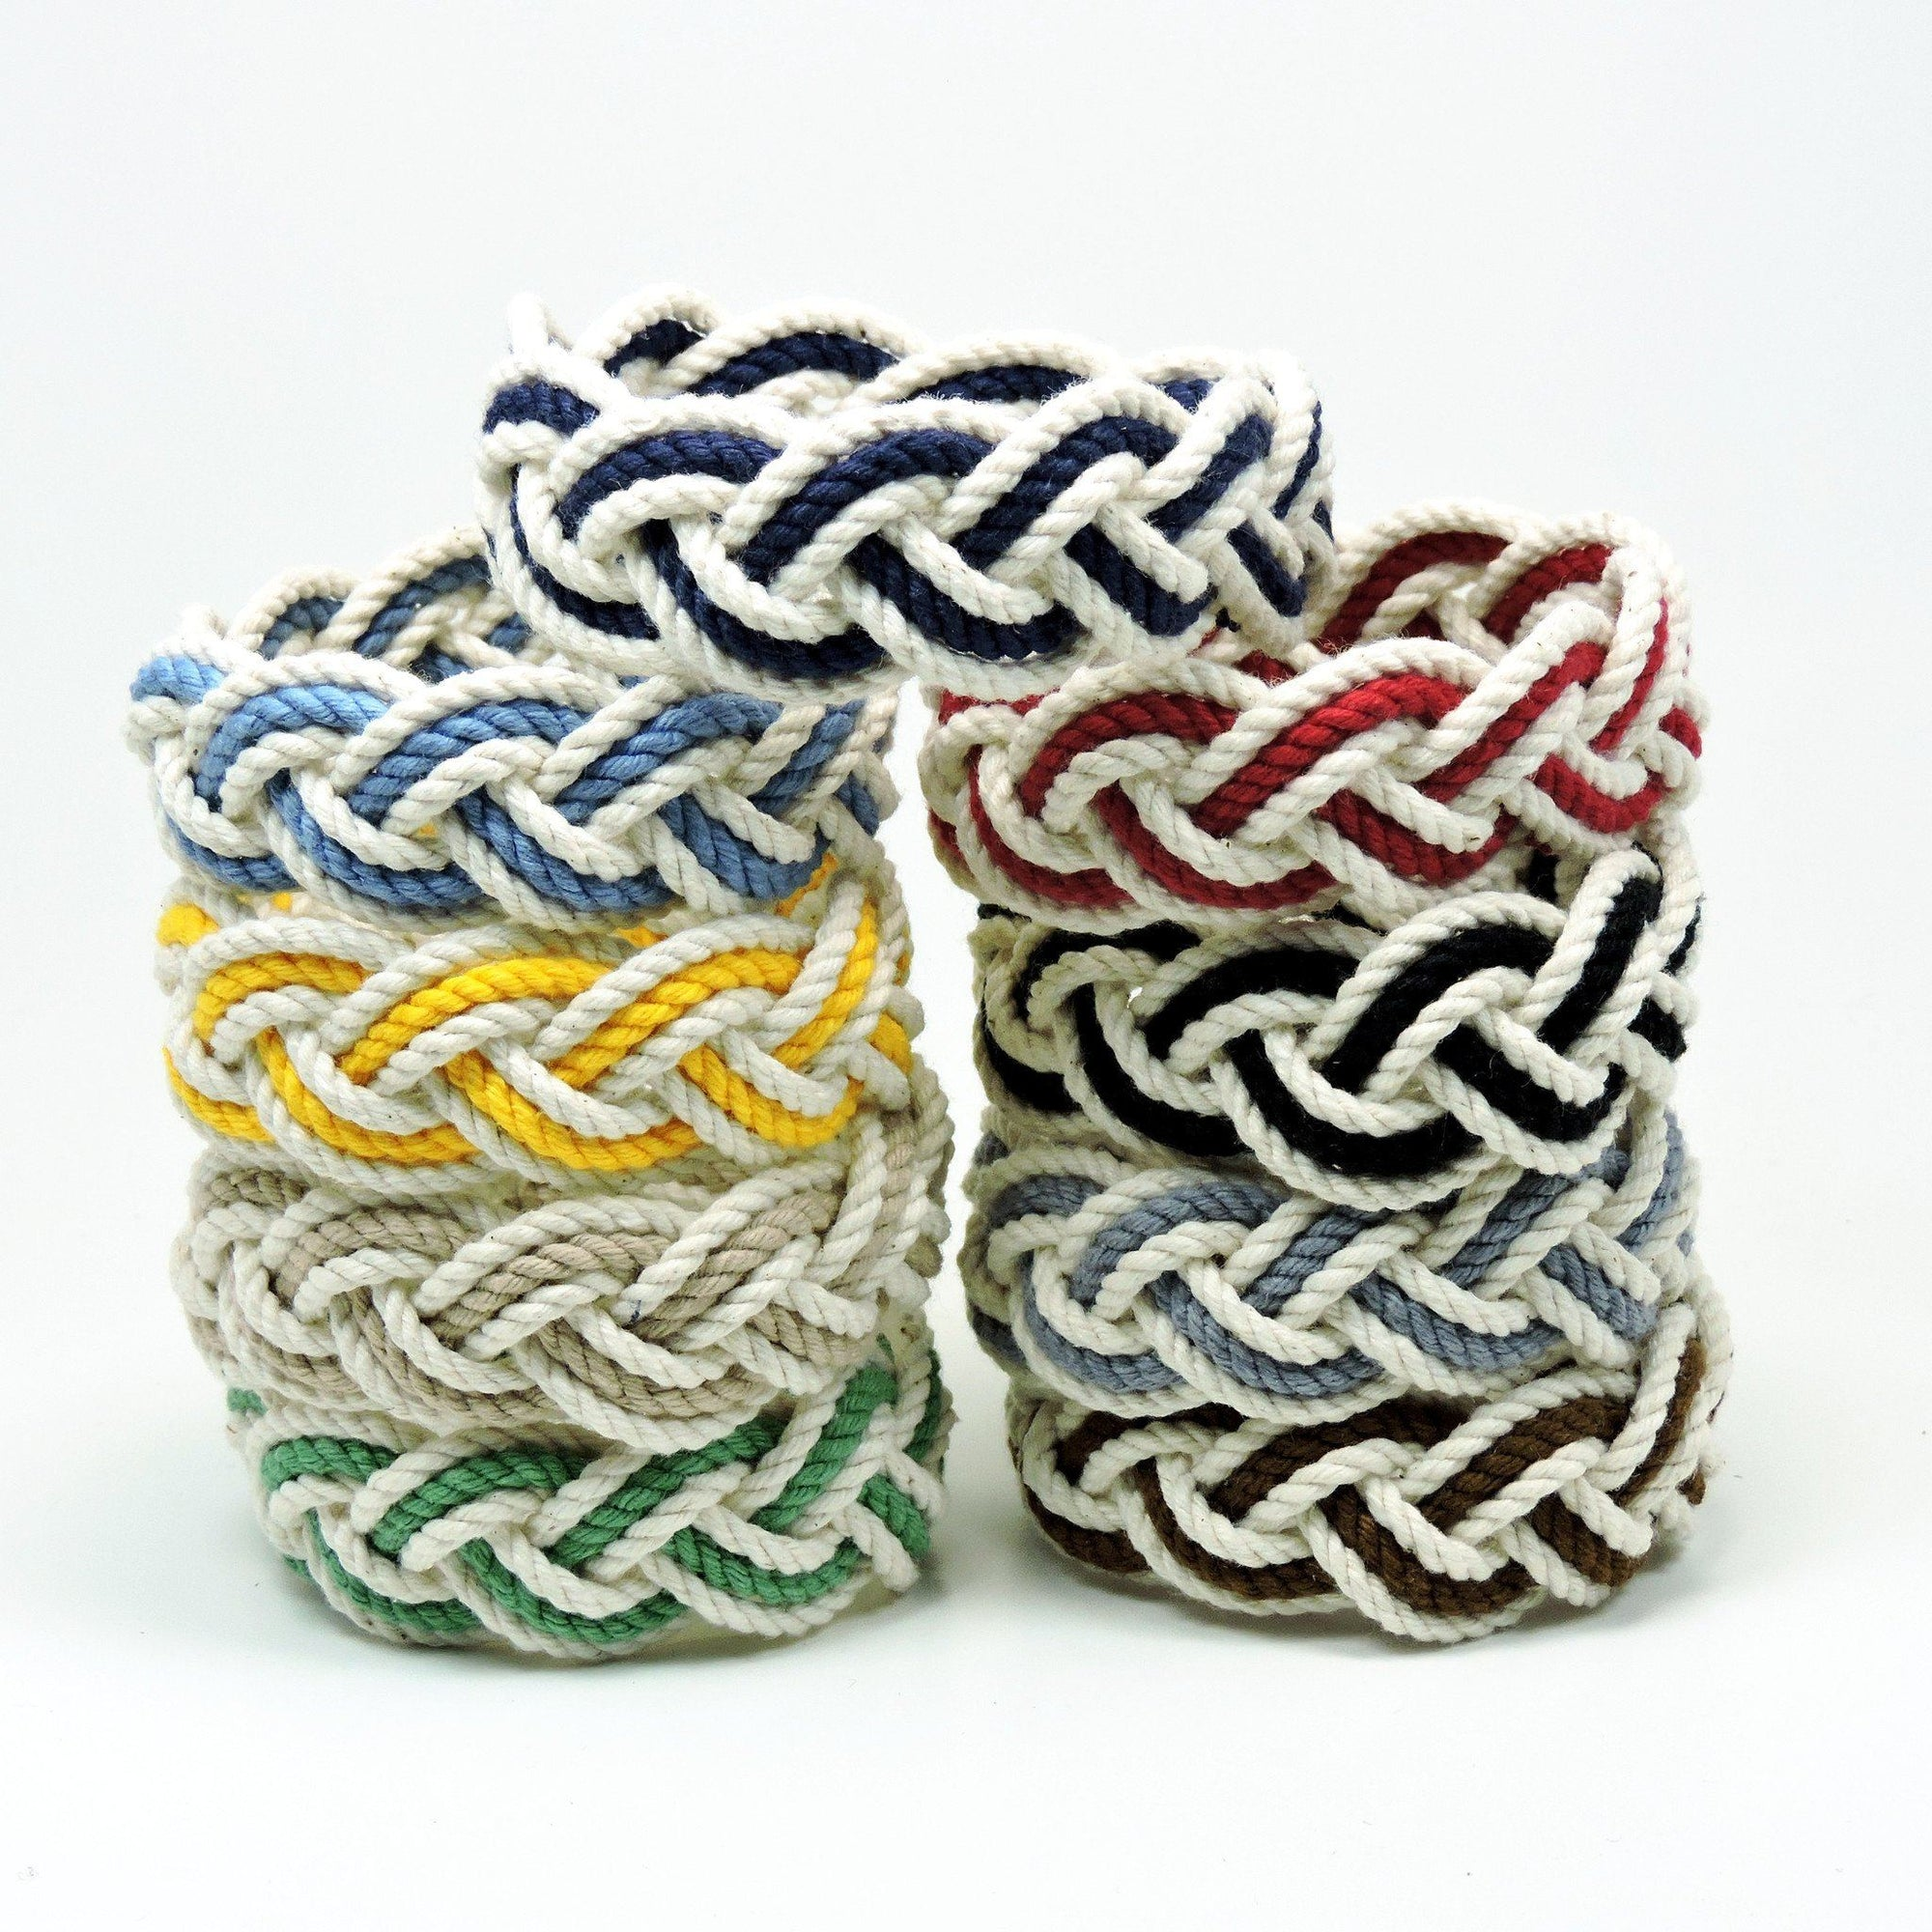 Nautical Striped Sailor Bracelet, White w/ Nautical Color Stripe Handmade sailor knot American Made in Mystic, CT $ 4.80